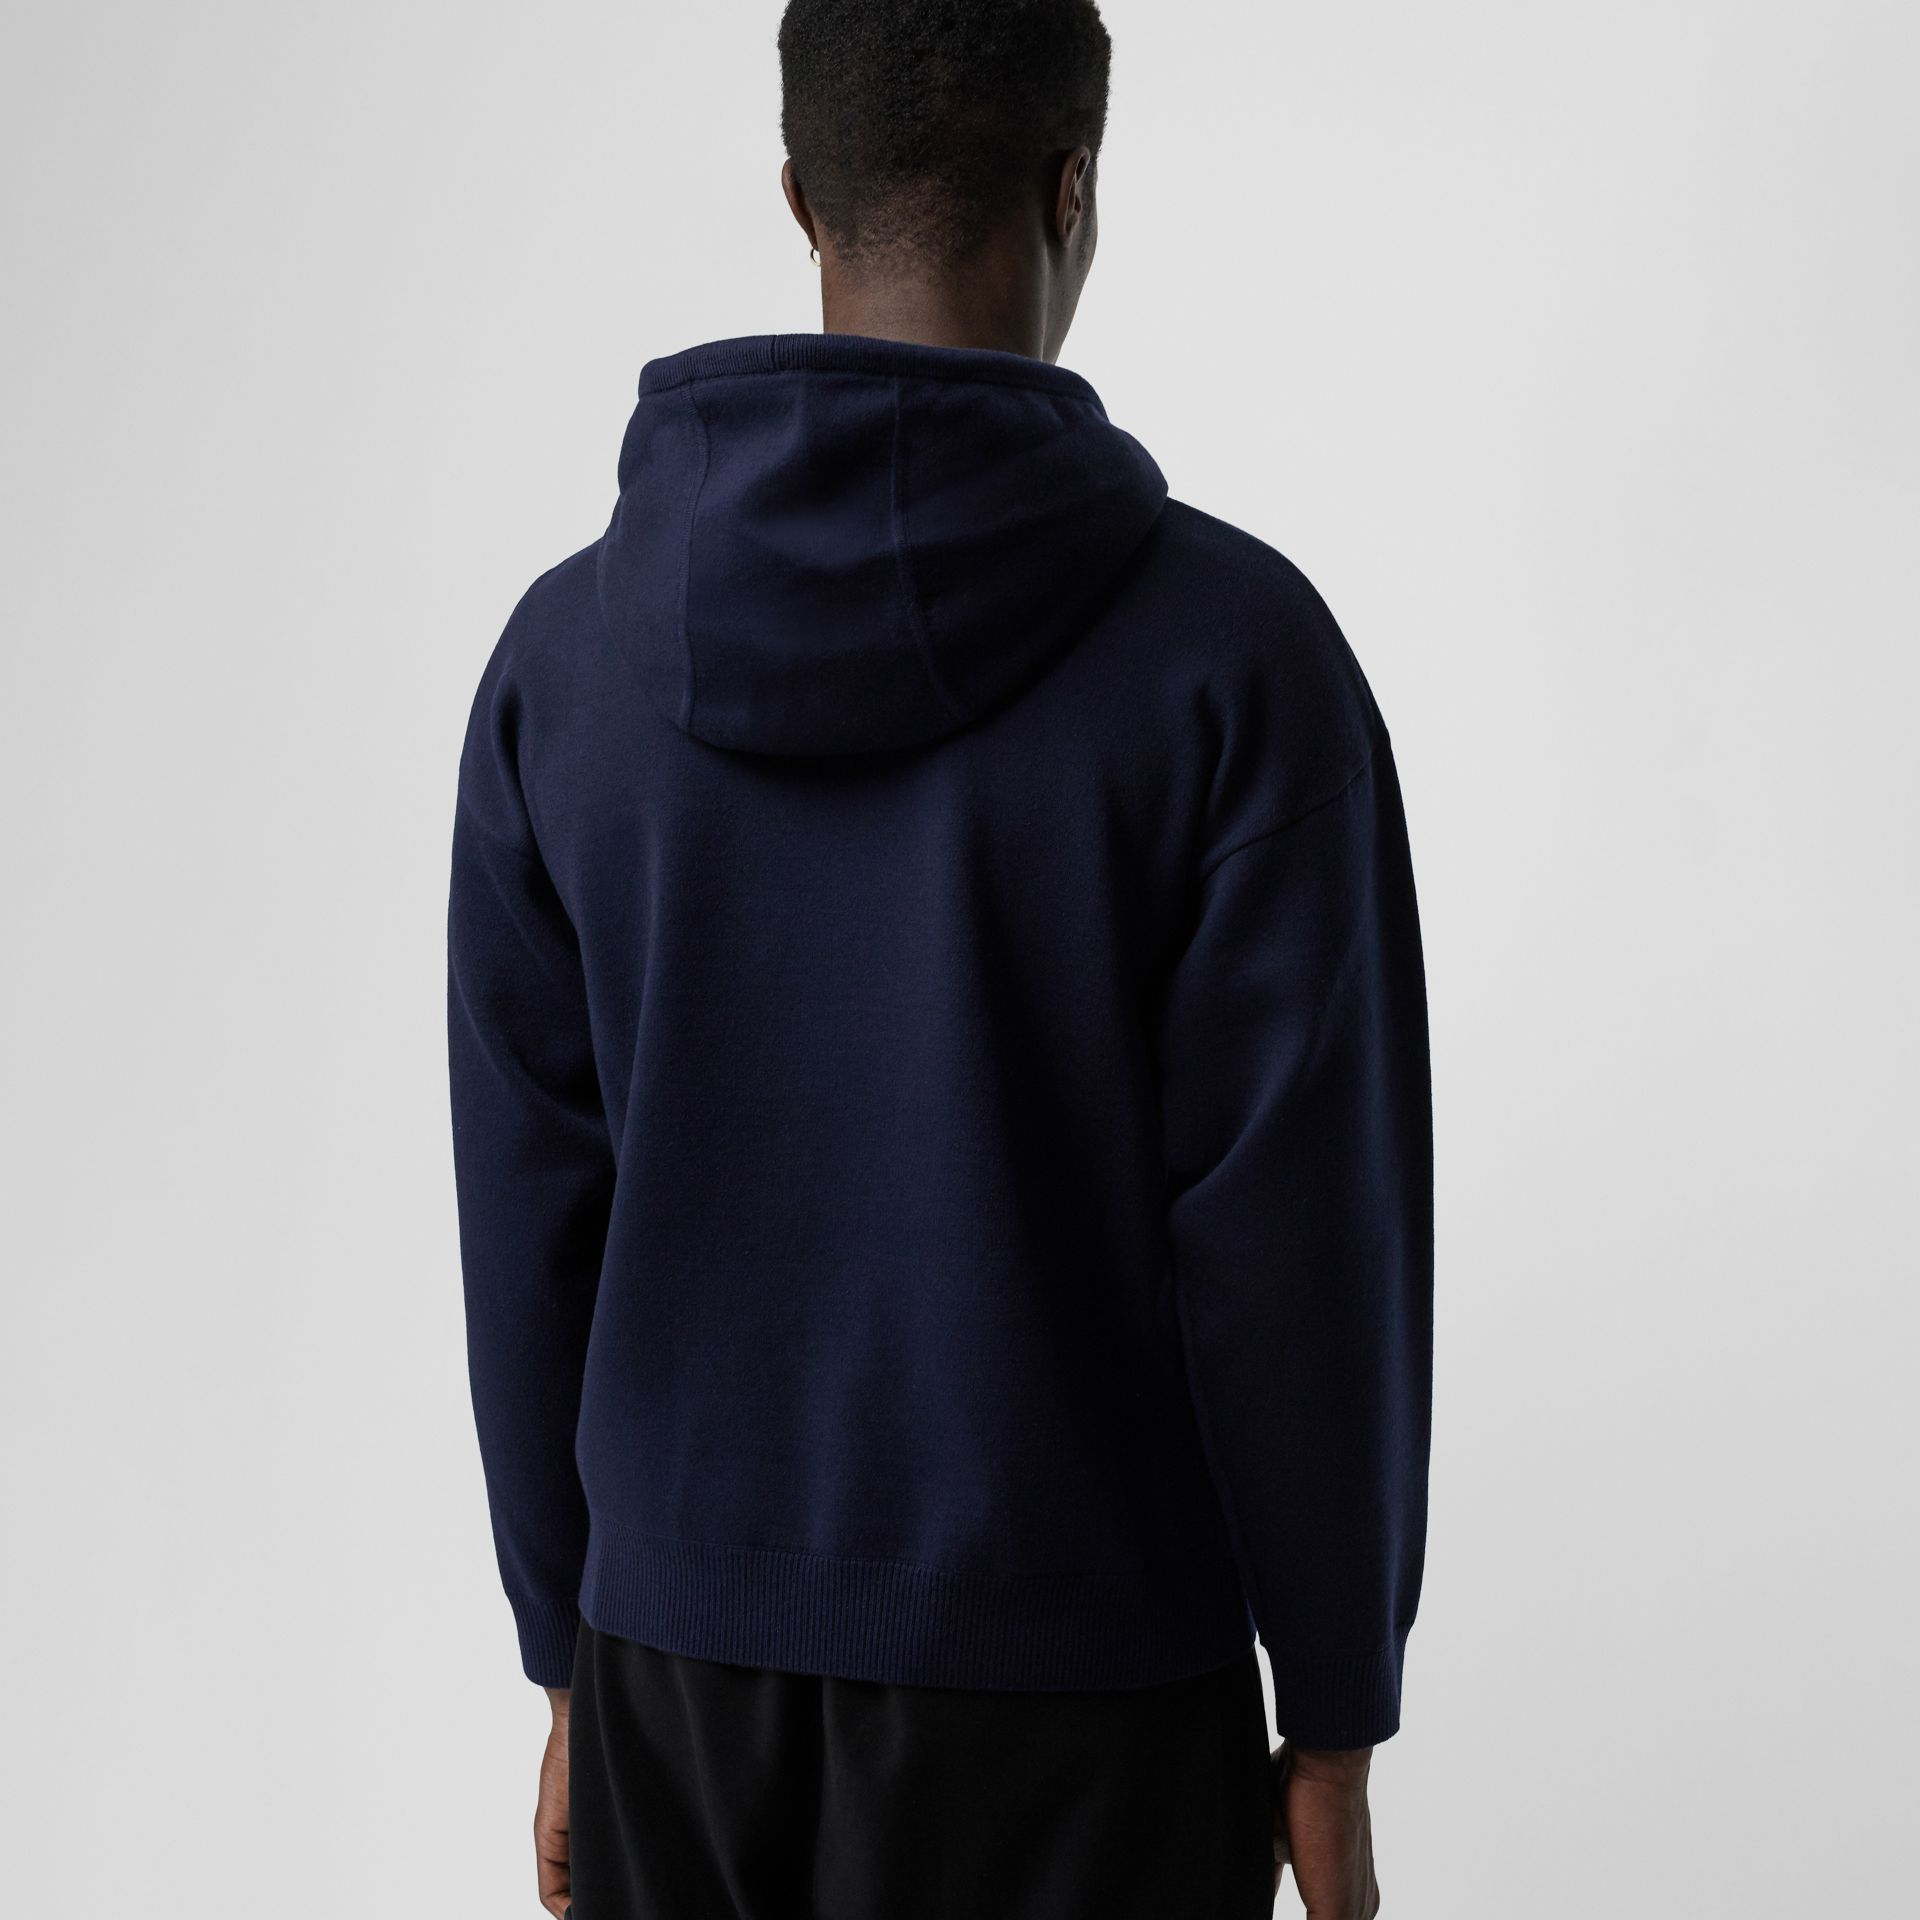 Crest Merino Wool Blend Jacquard Hoodie in Navy - Men | Burberry - gallery image 2